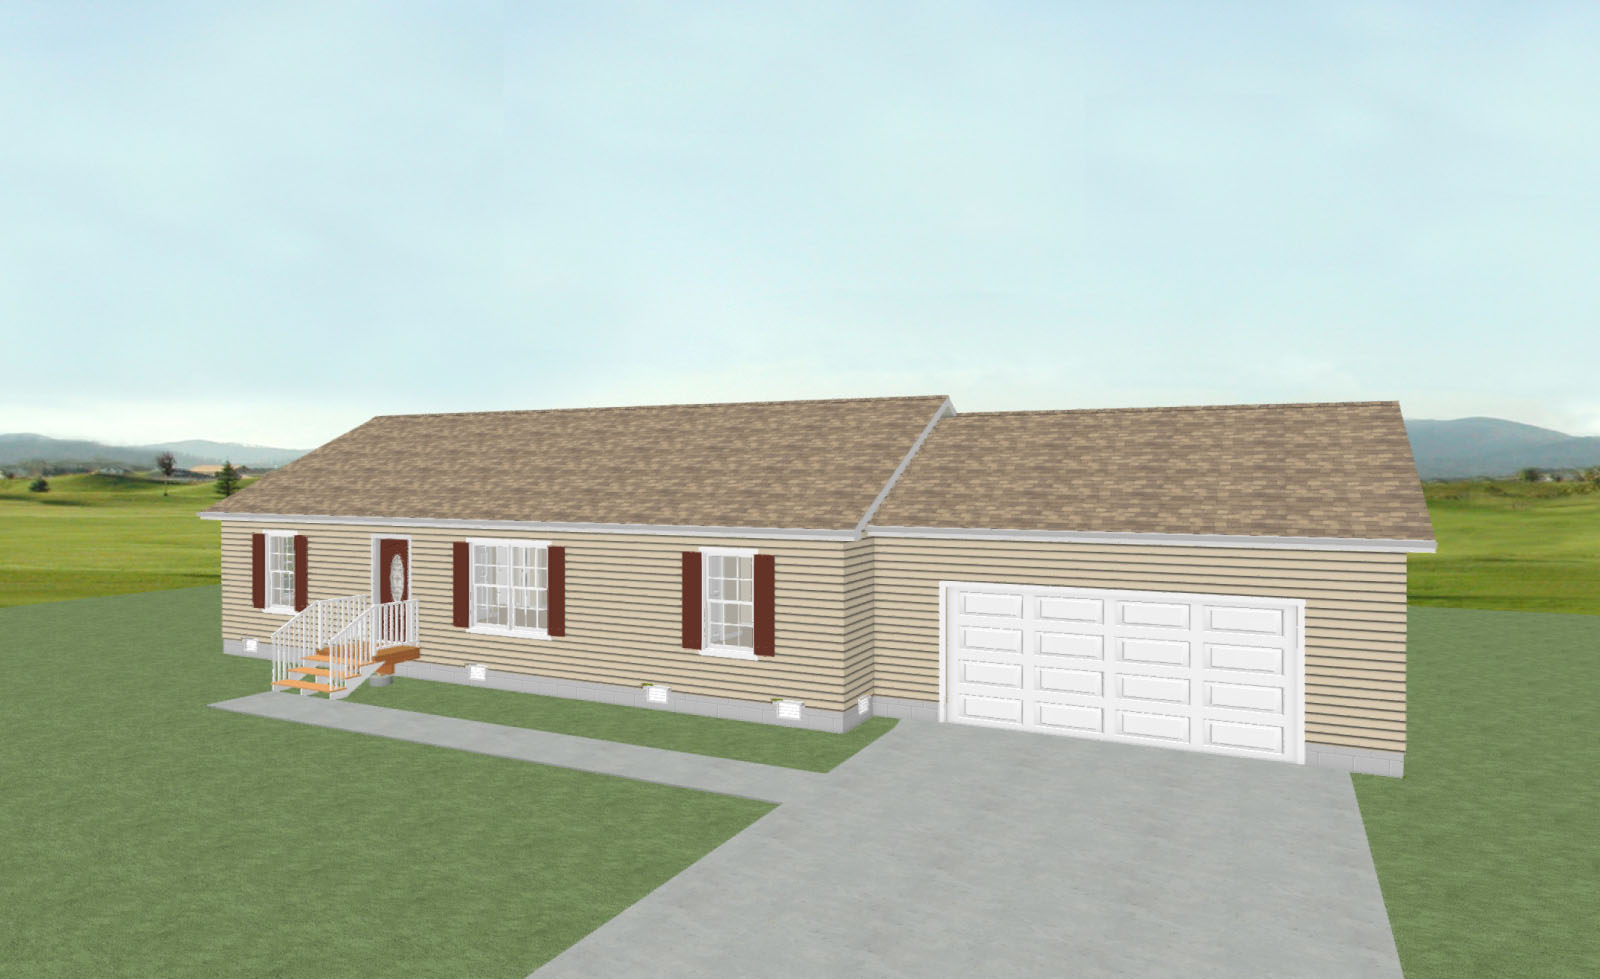 Architectural rendering for small house plans designed and drafting at H&H Builders, Inc.